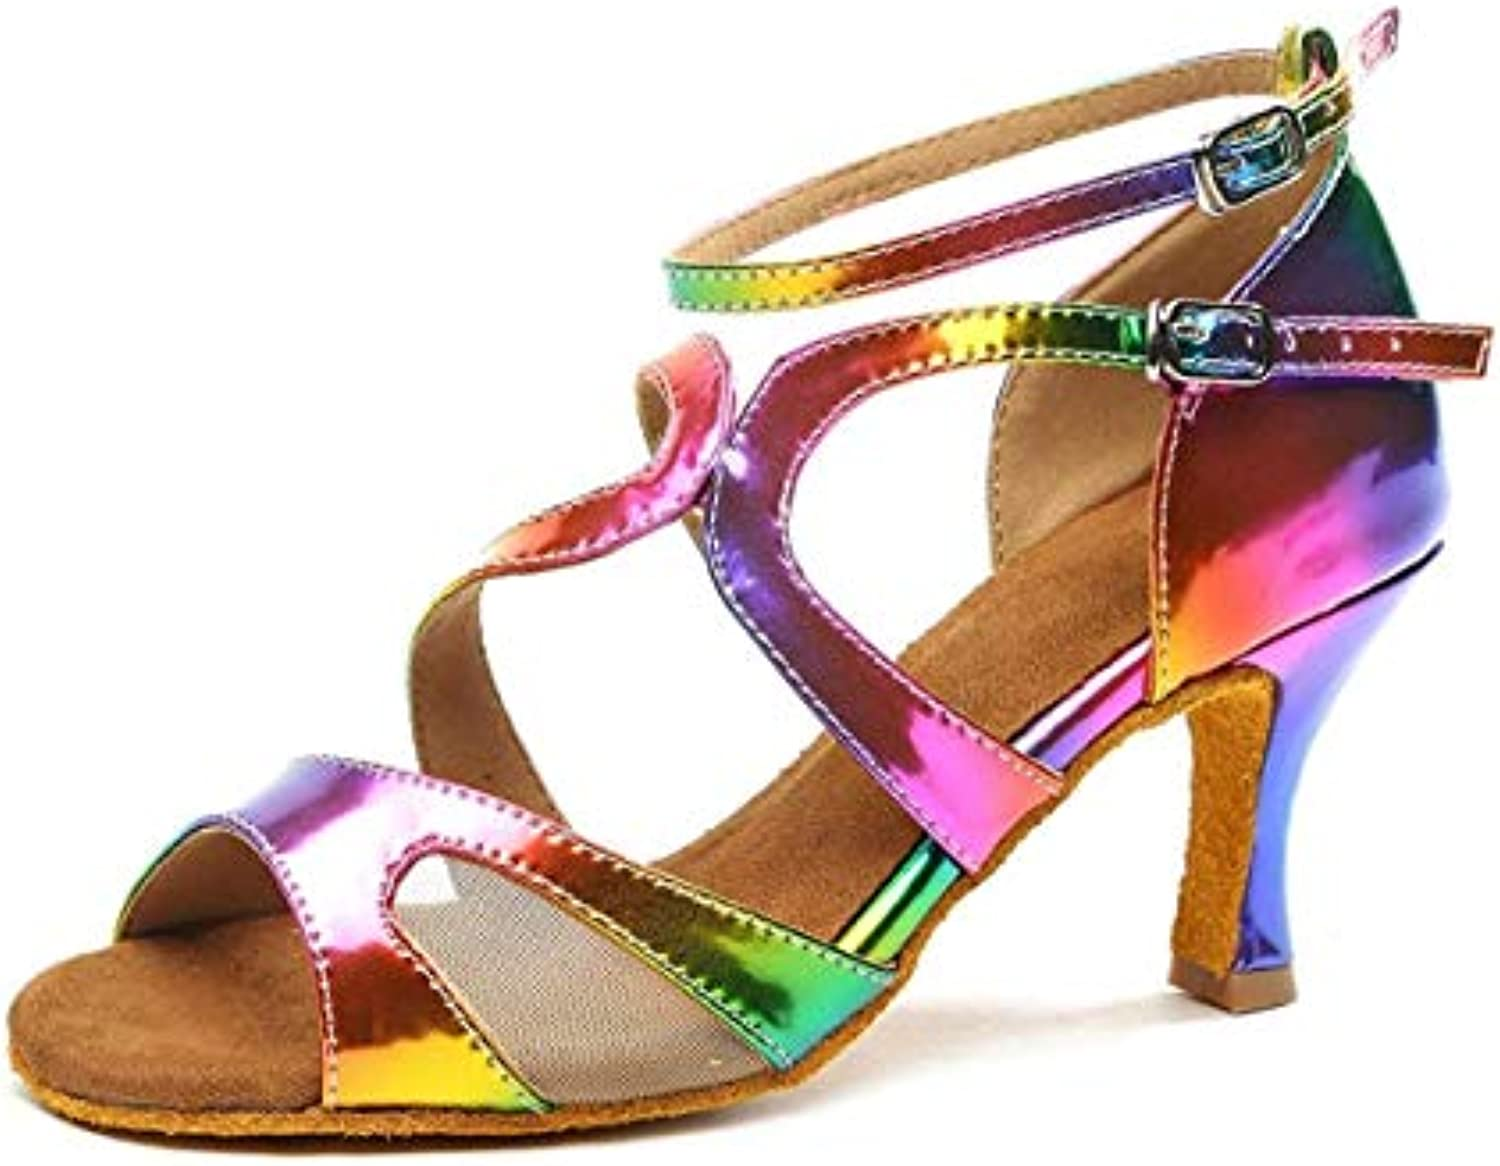 Qiusa GL249 Ladies Ankle Strap Strap Strap Moda Sintetica Scarpe da Ballo Coloreeful Party Prom Sandali UK 6 (Coloreee   -, Dimensione... | Il Prezzo Ragionevole